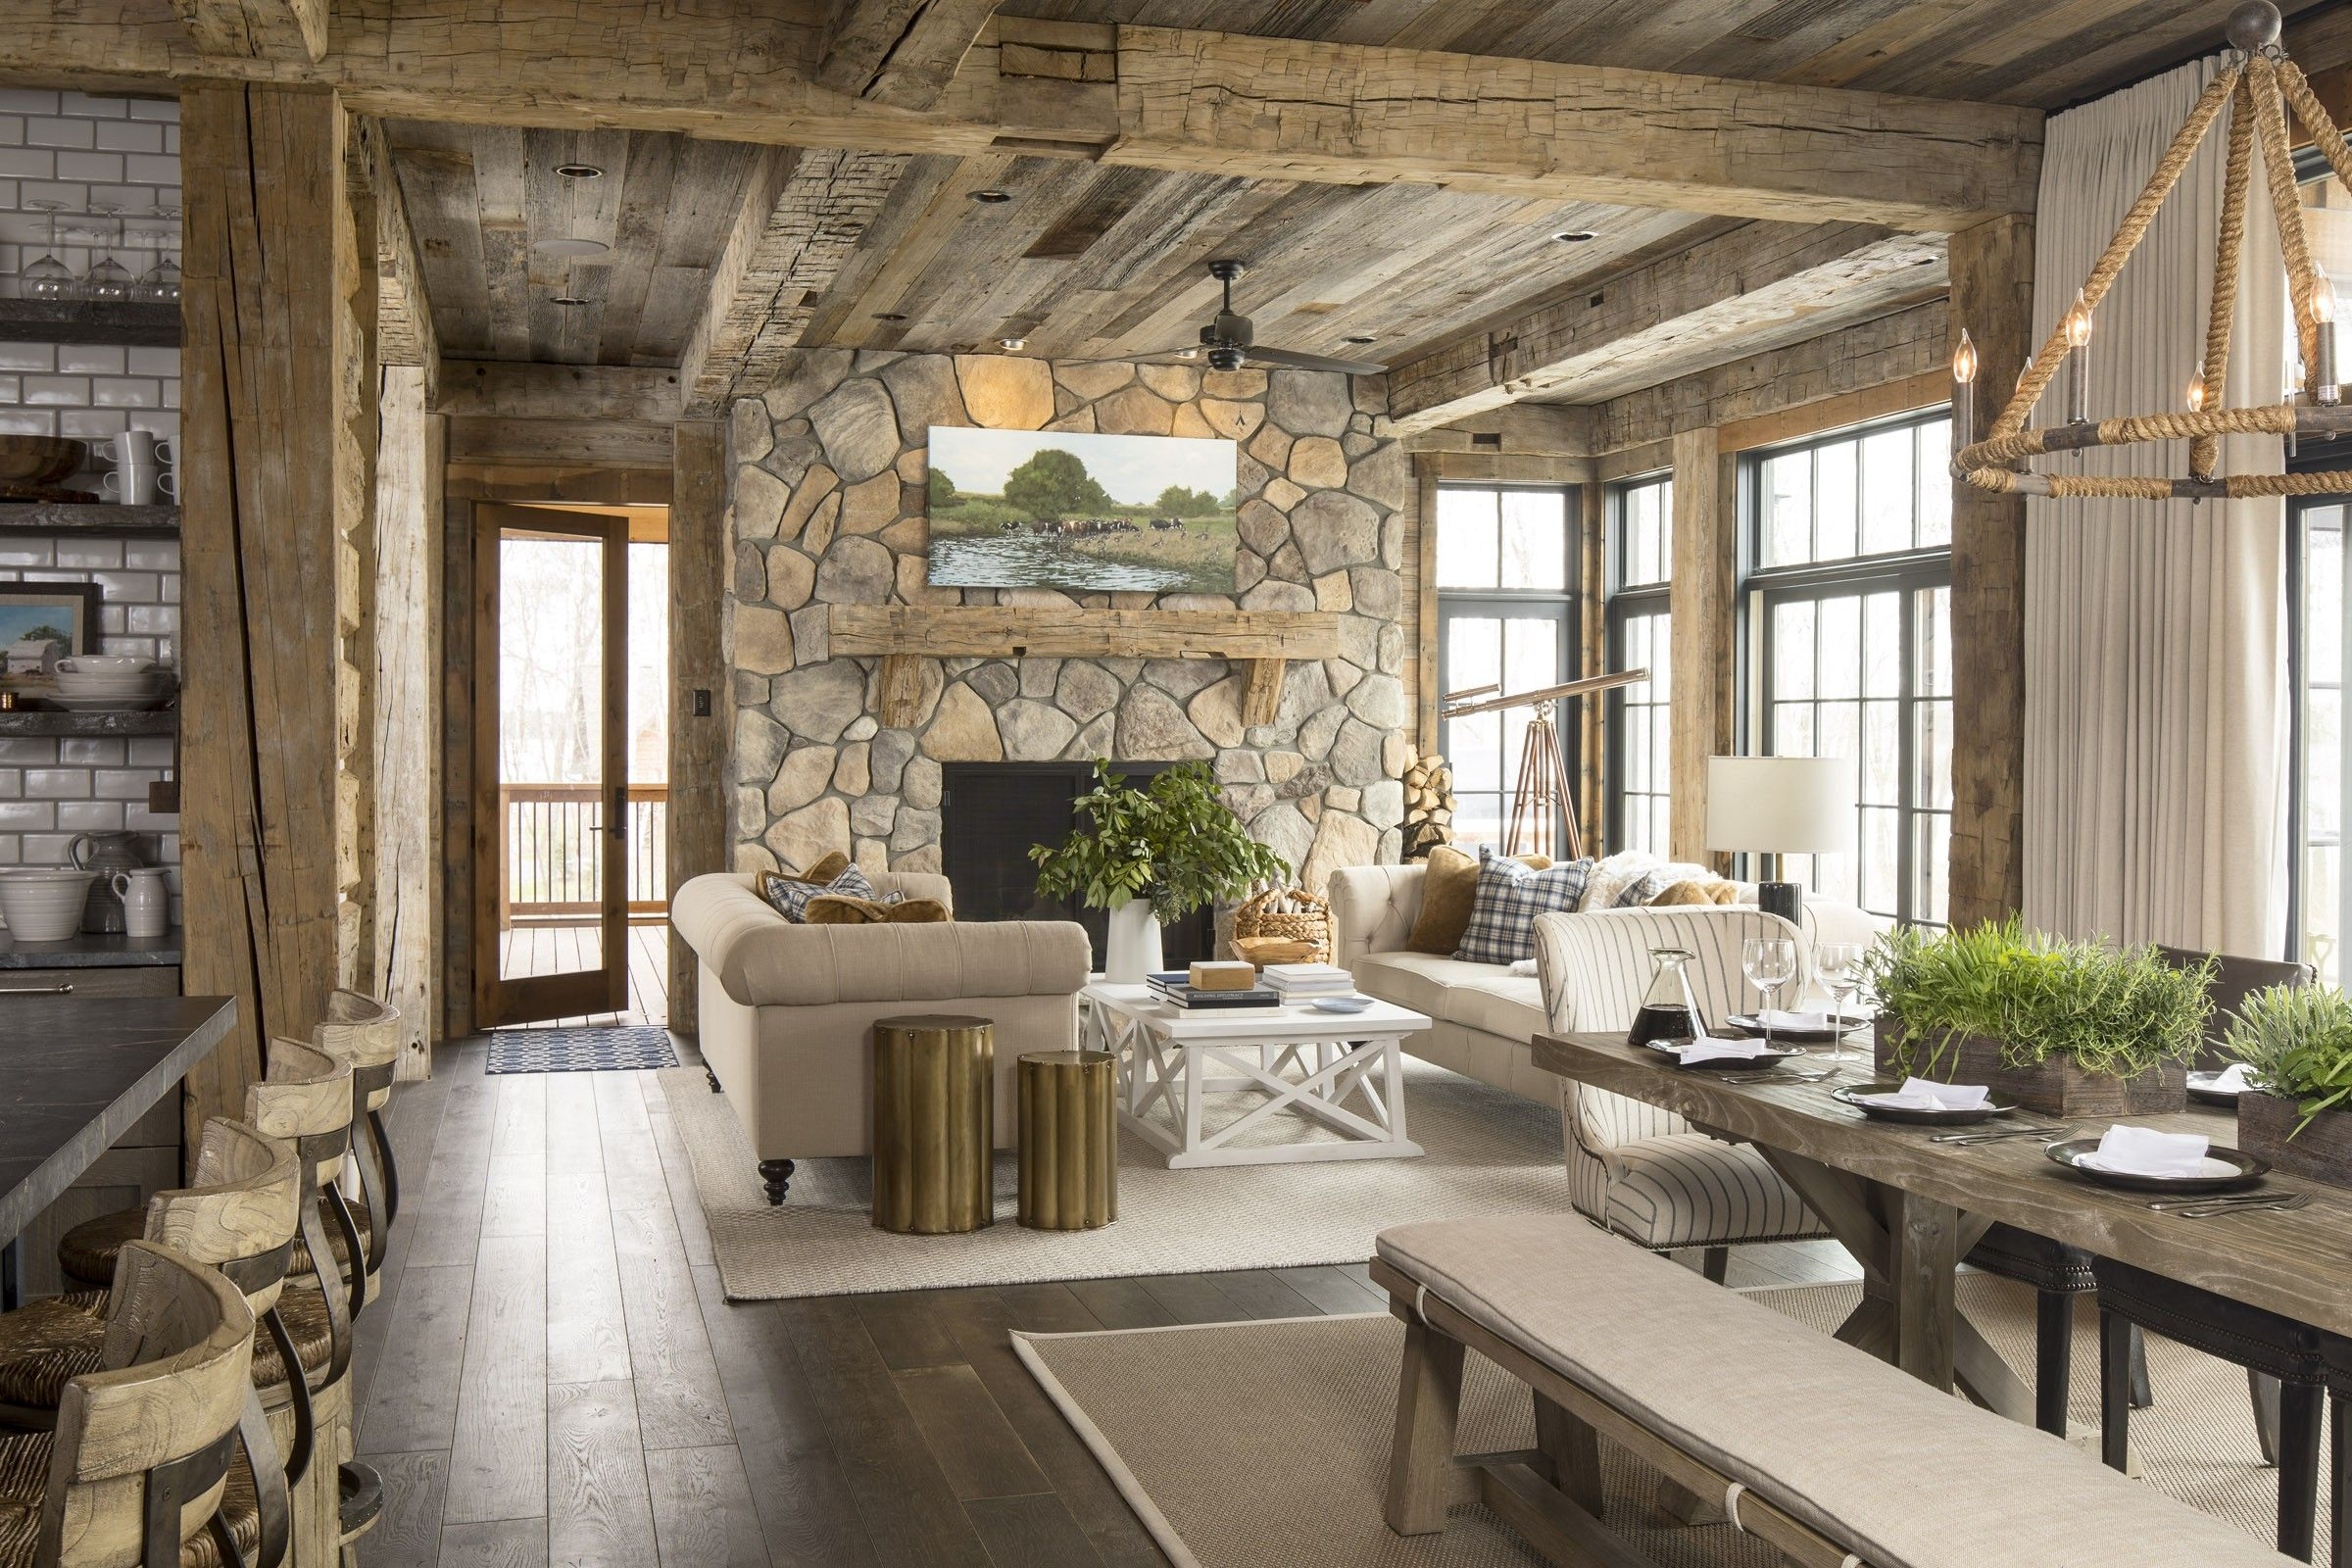 Rustic Reclaimed Wood Dining Room Open To Kitchen And Living Room